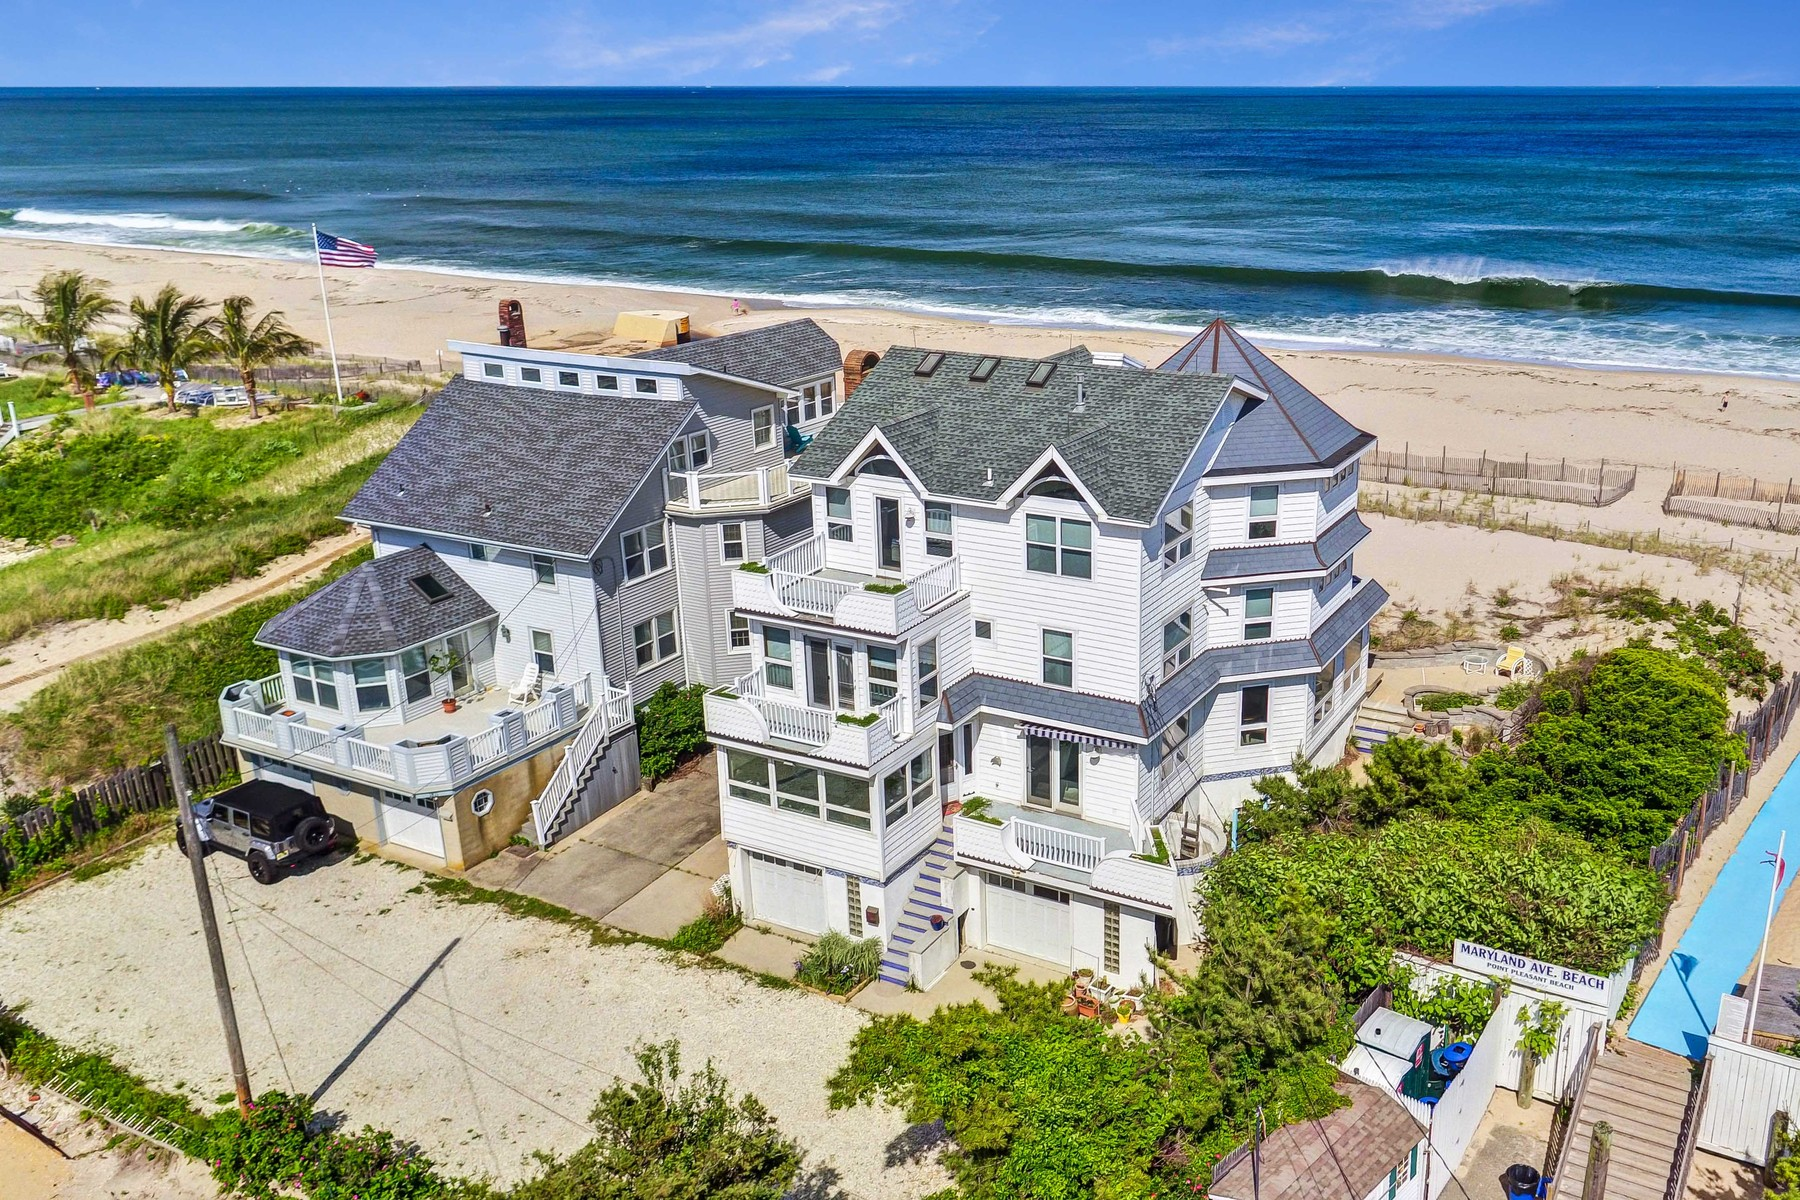 Single Family Home for Sale at Oceanfront Opportunity 1 Maryland Ave Point Pleasant Beach, New Jersey 08742 United States